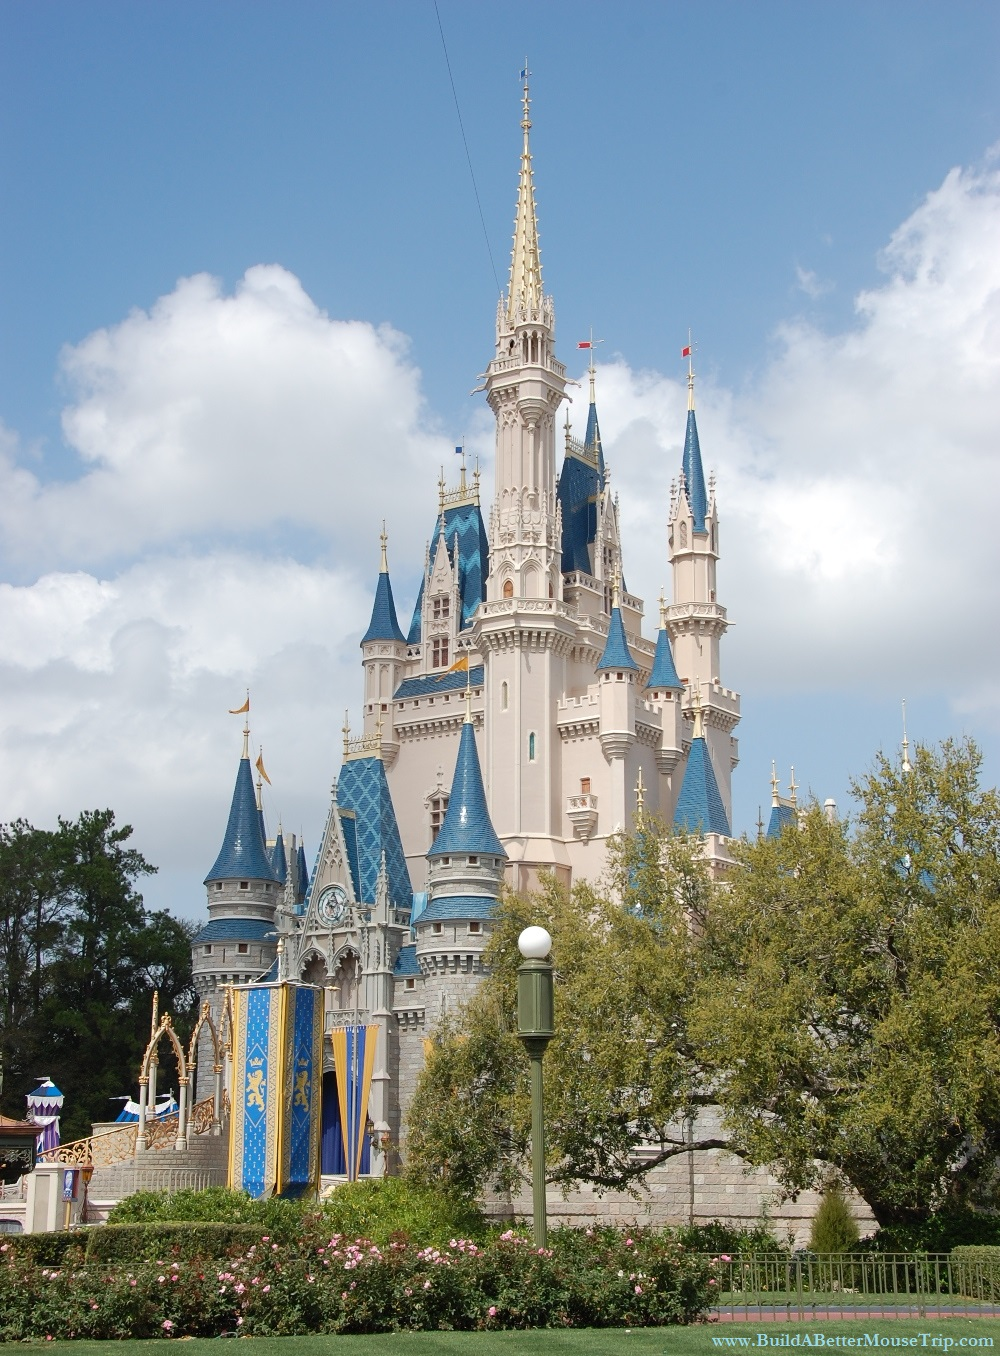 Cinderella's Castle in the Magic Kingdom at Disney World.